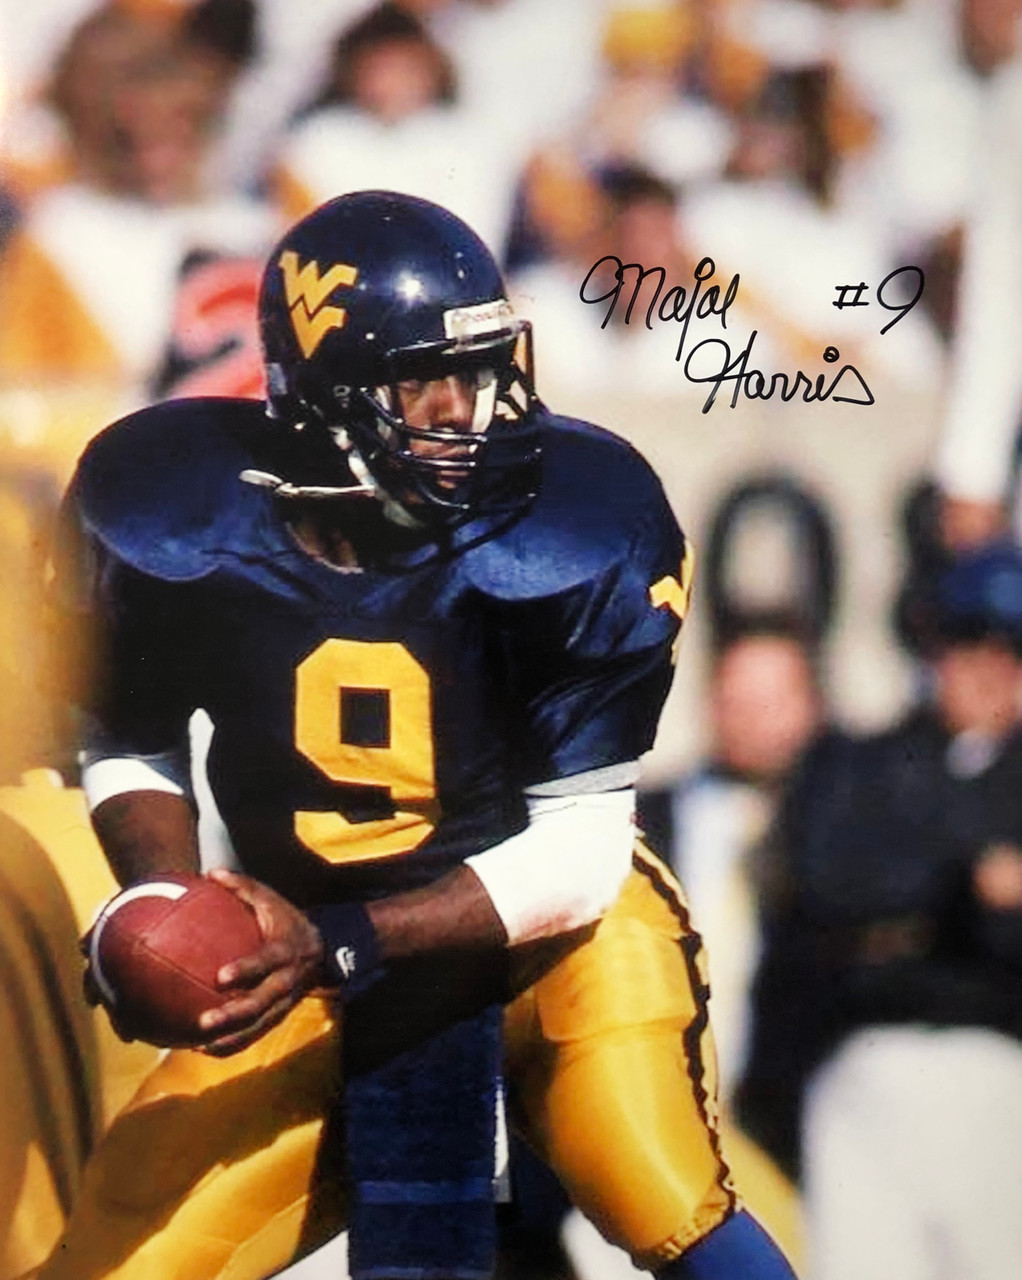 Major Harris West Virginia Mountaineers 16-1 16x20 Autographed Photo - Certified Authentic